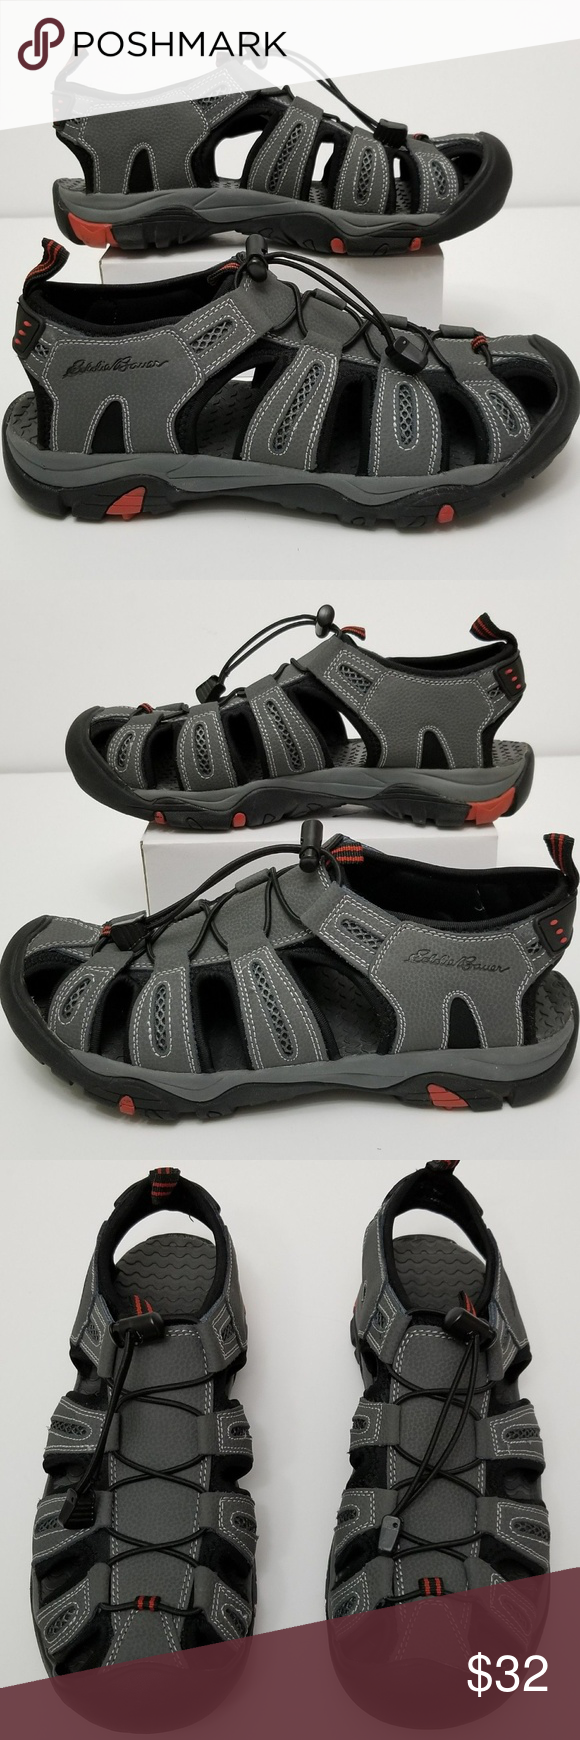 866b60fa1e4b Eddie Bauer Grey Fisherman Bump toe Cinch Sandals   PRICE IS FIRM   Pre